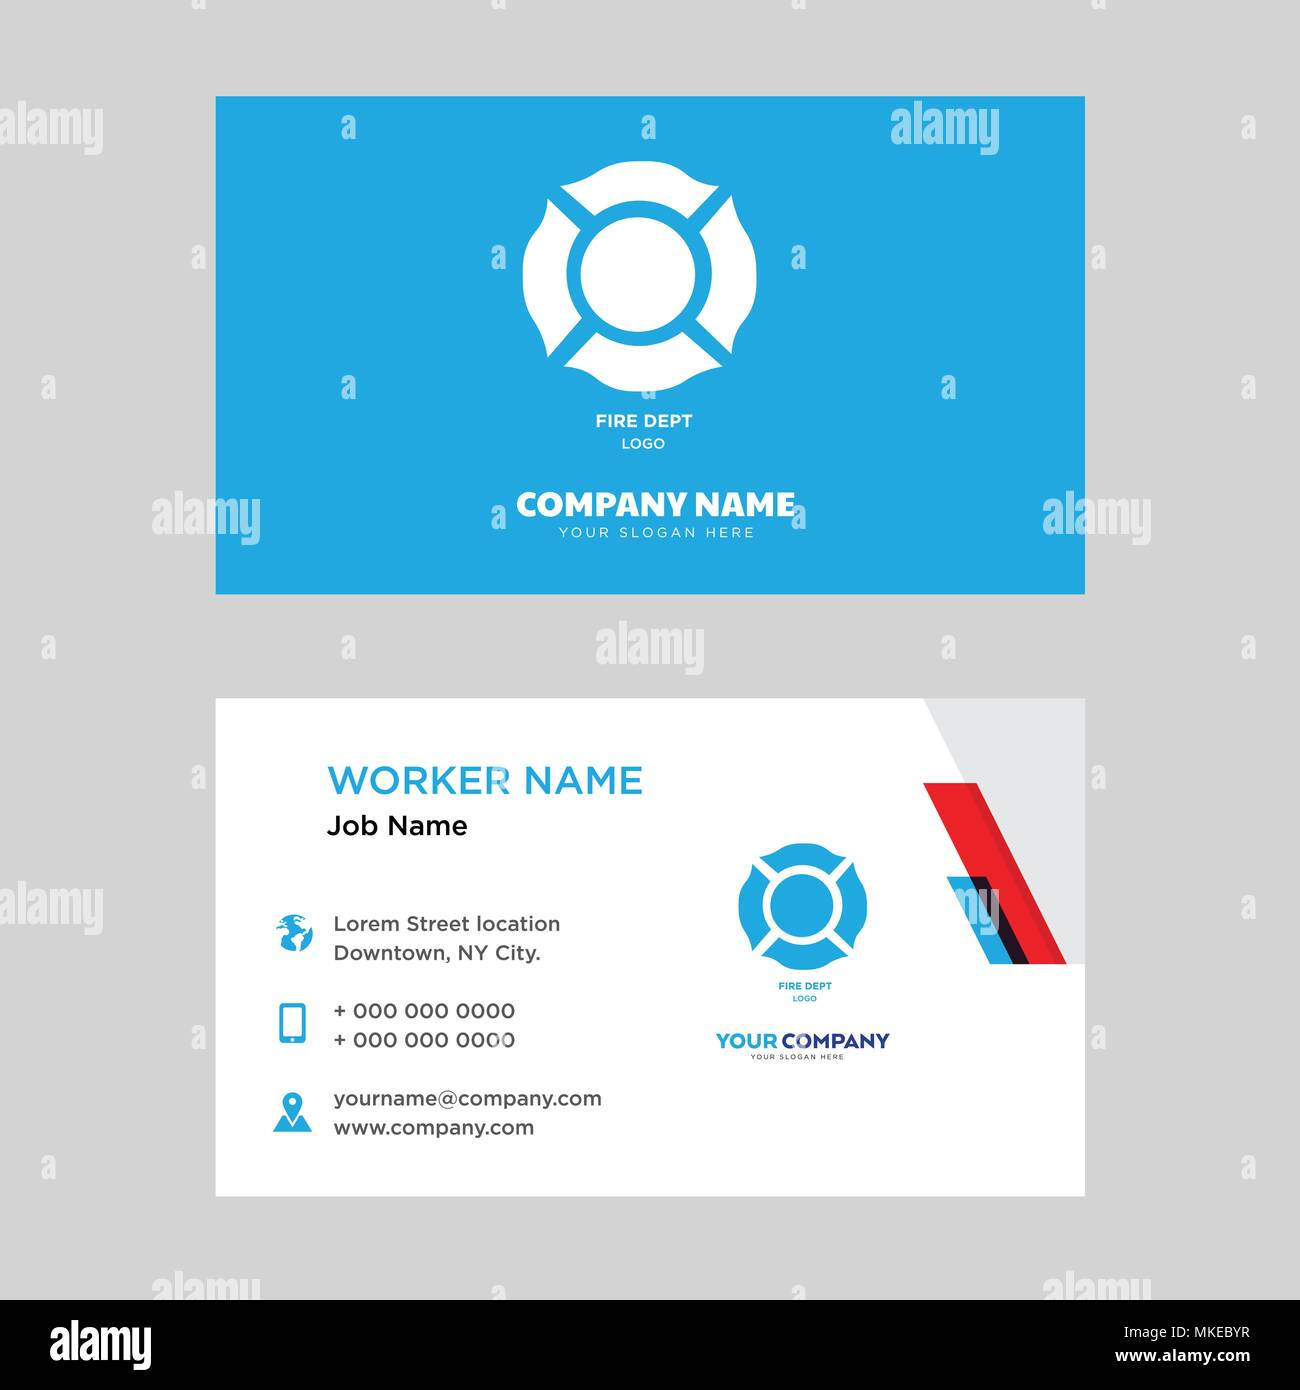 fire dept business card design template visiting for your company